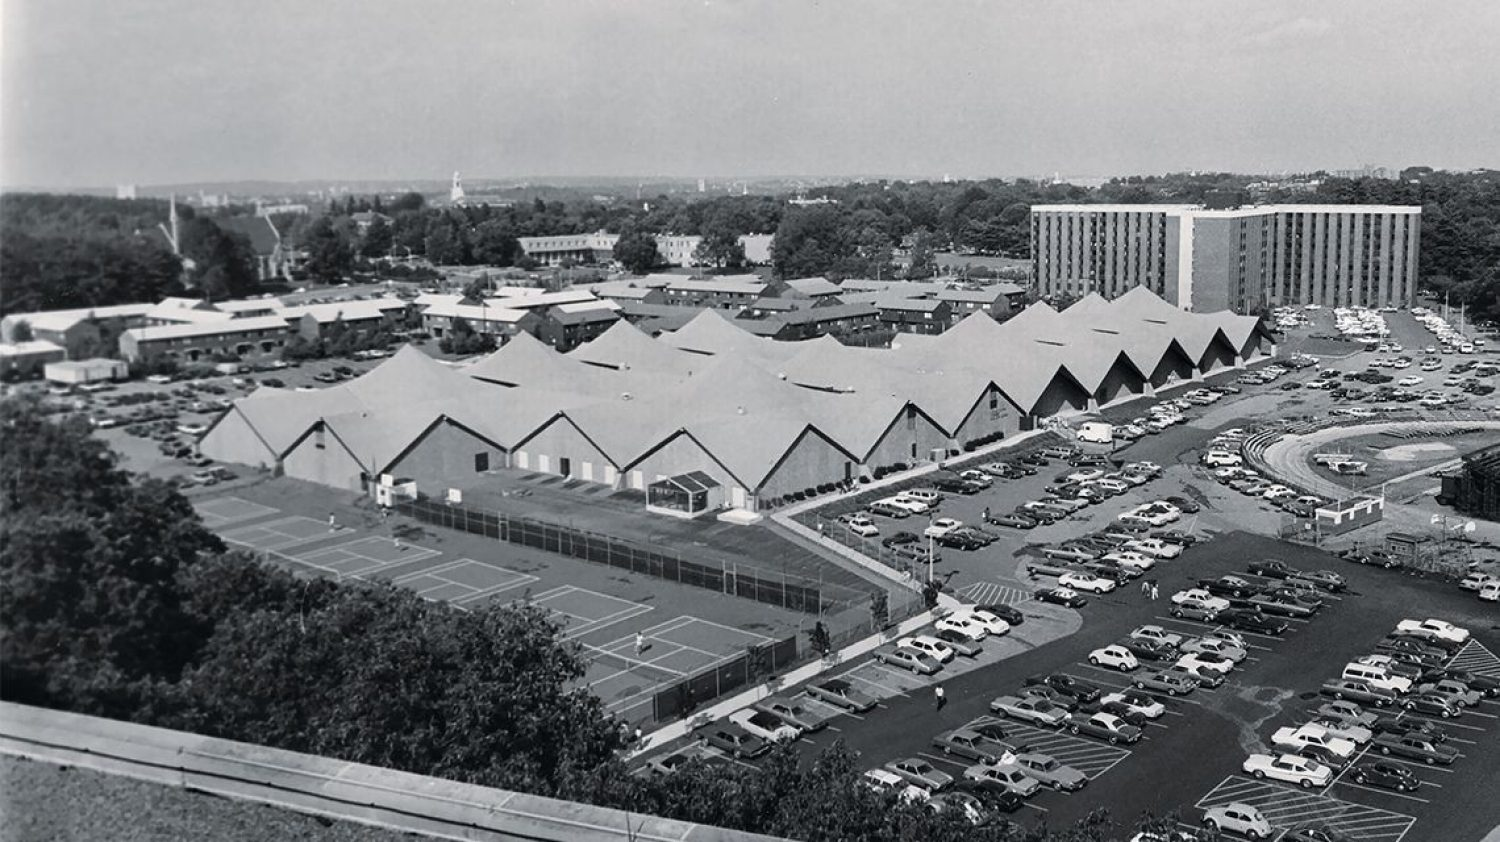 Old photo of the Plex